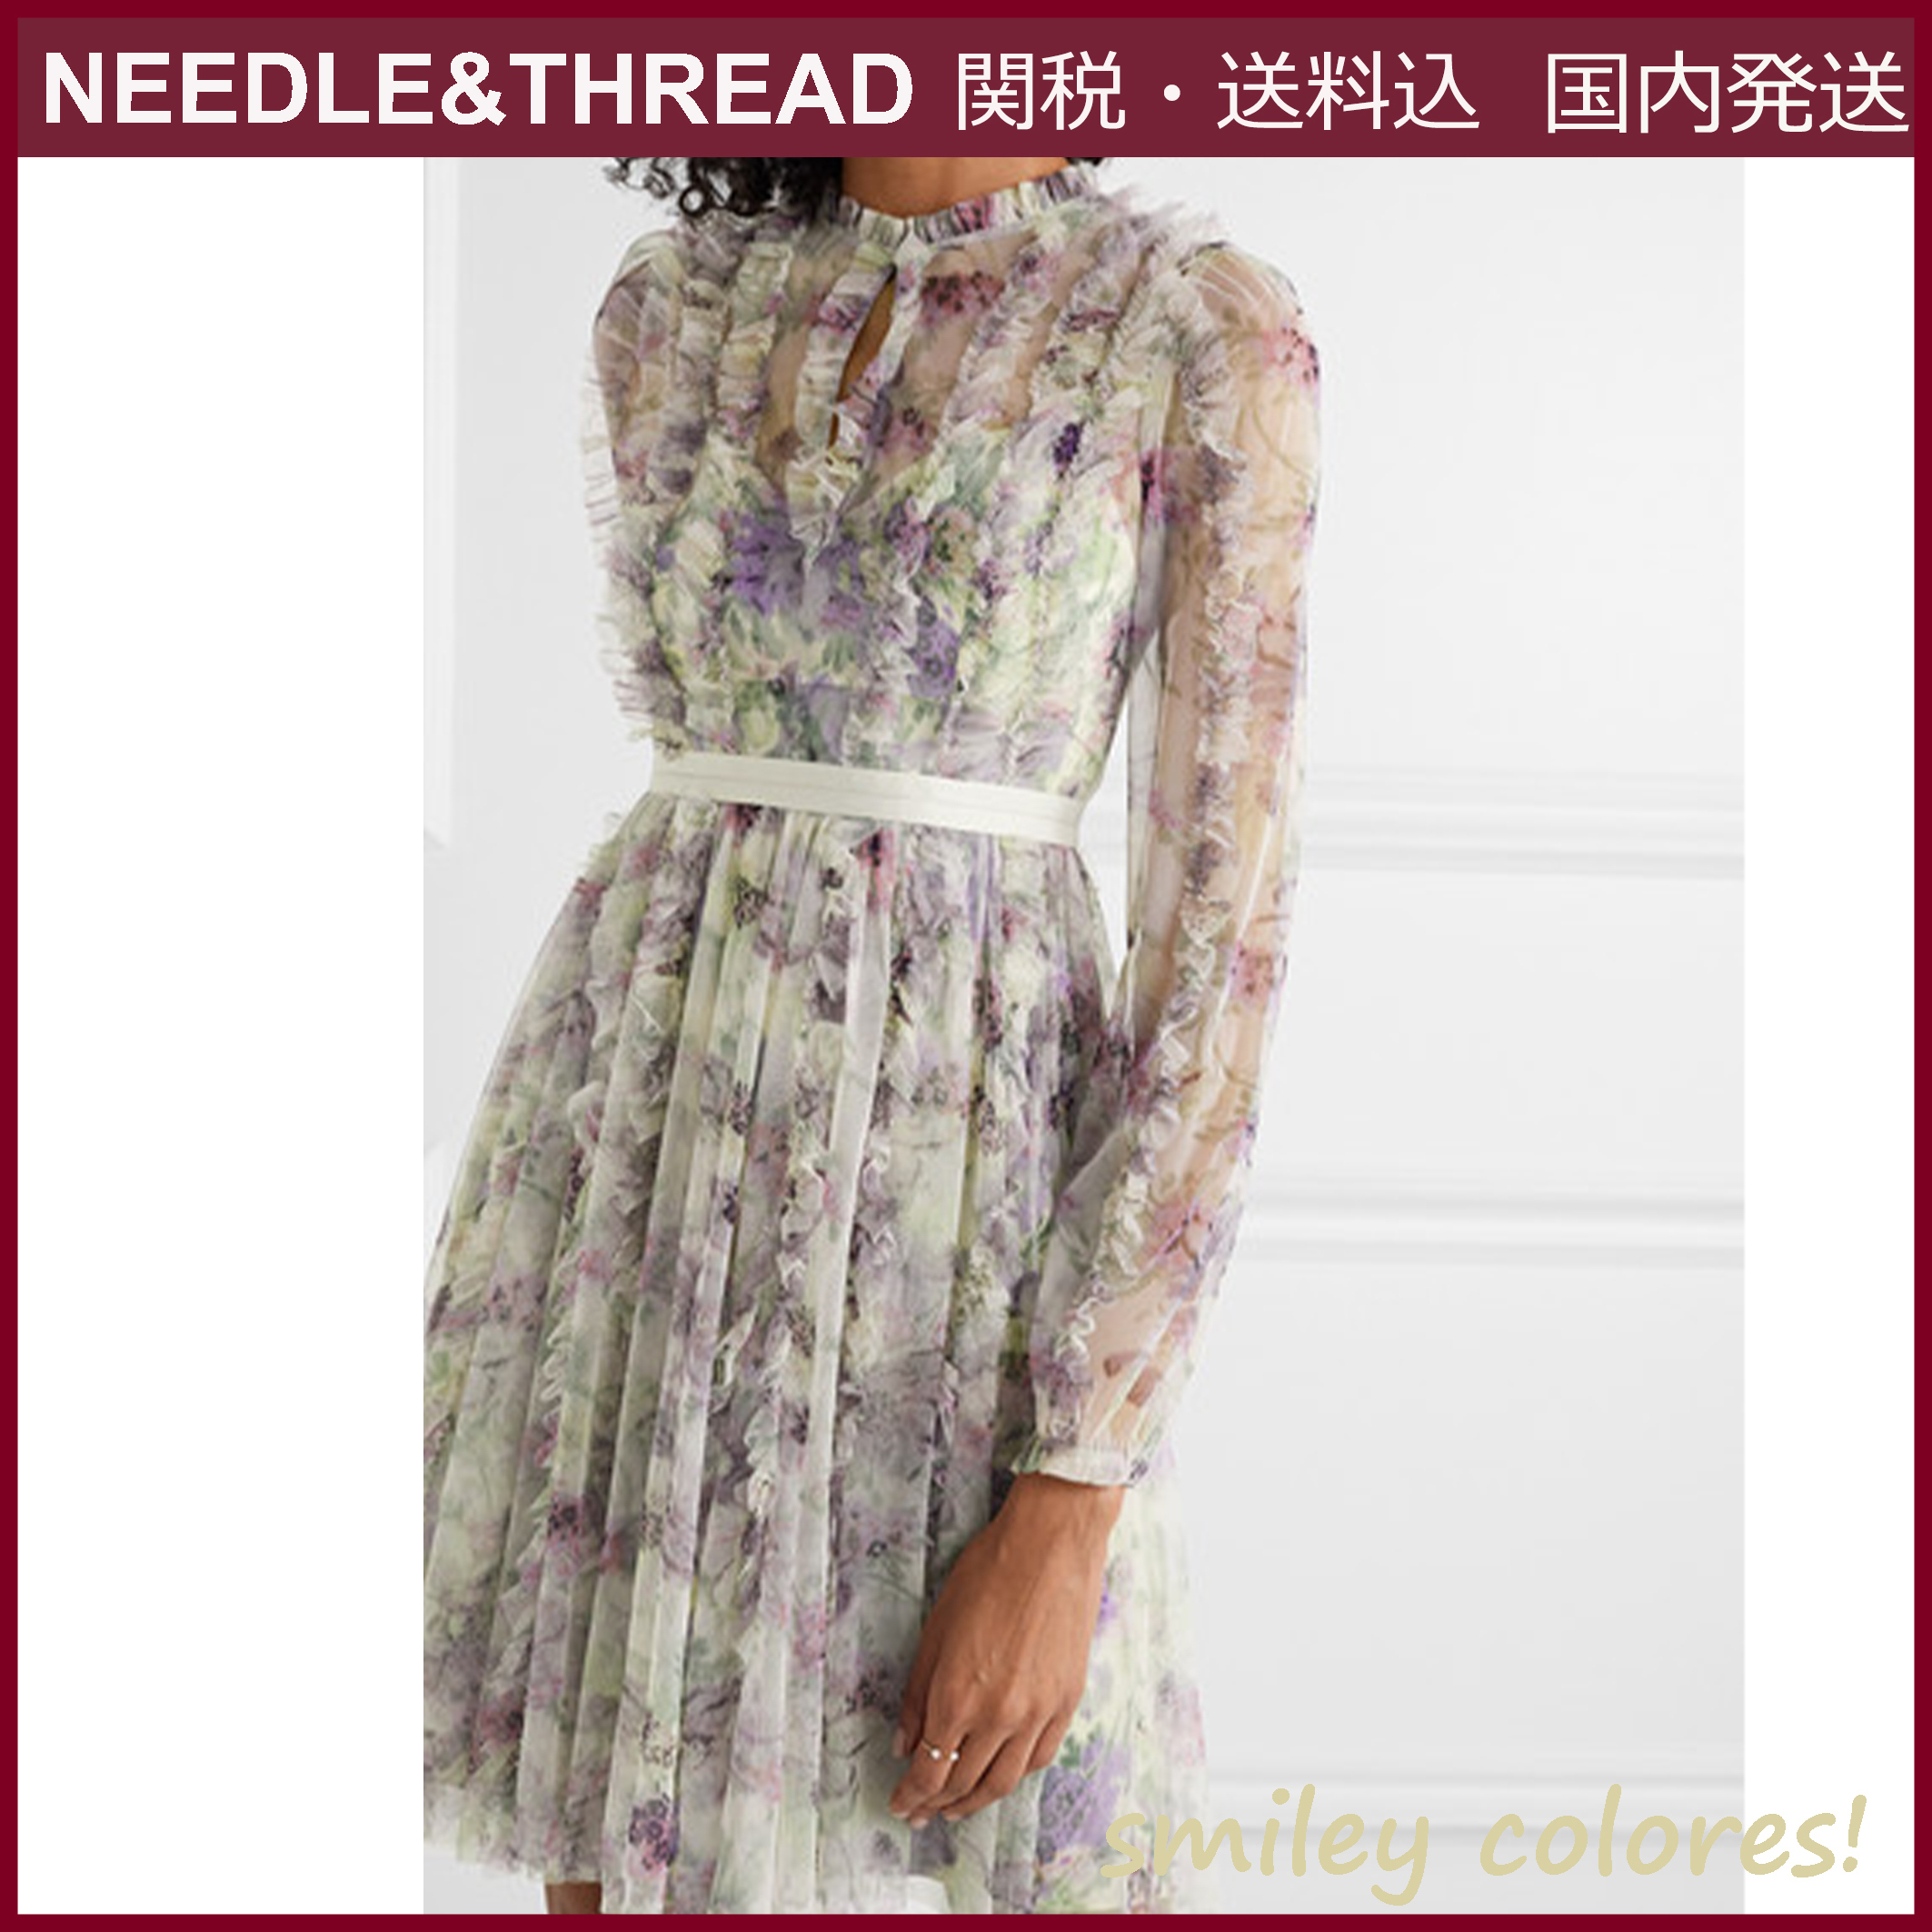 shop needle&thread clothing